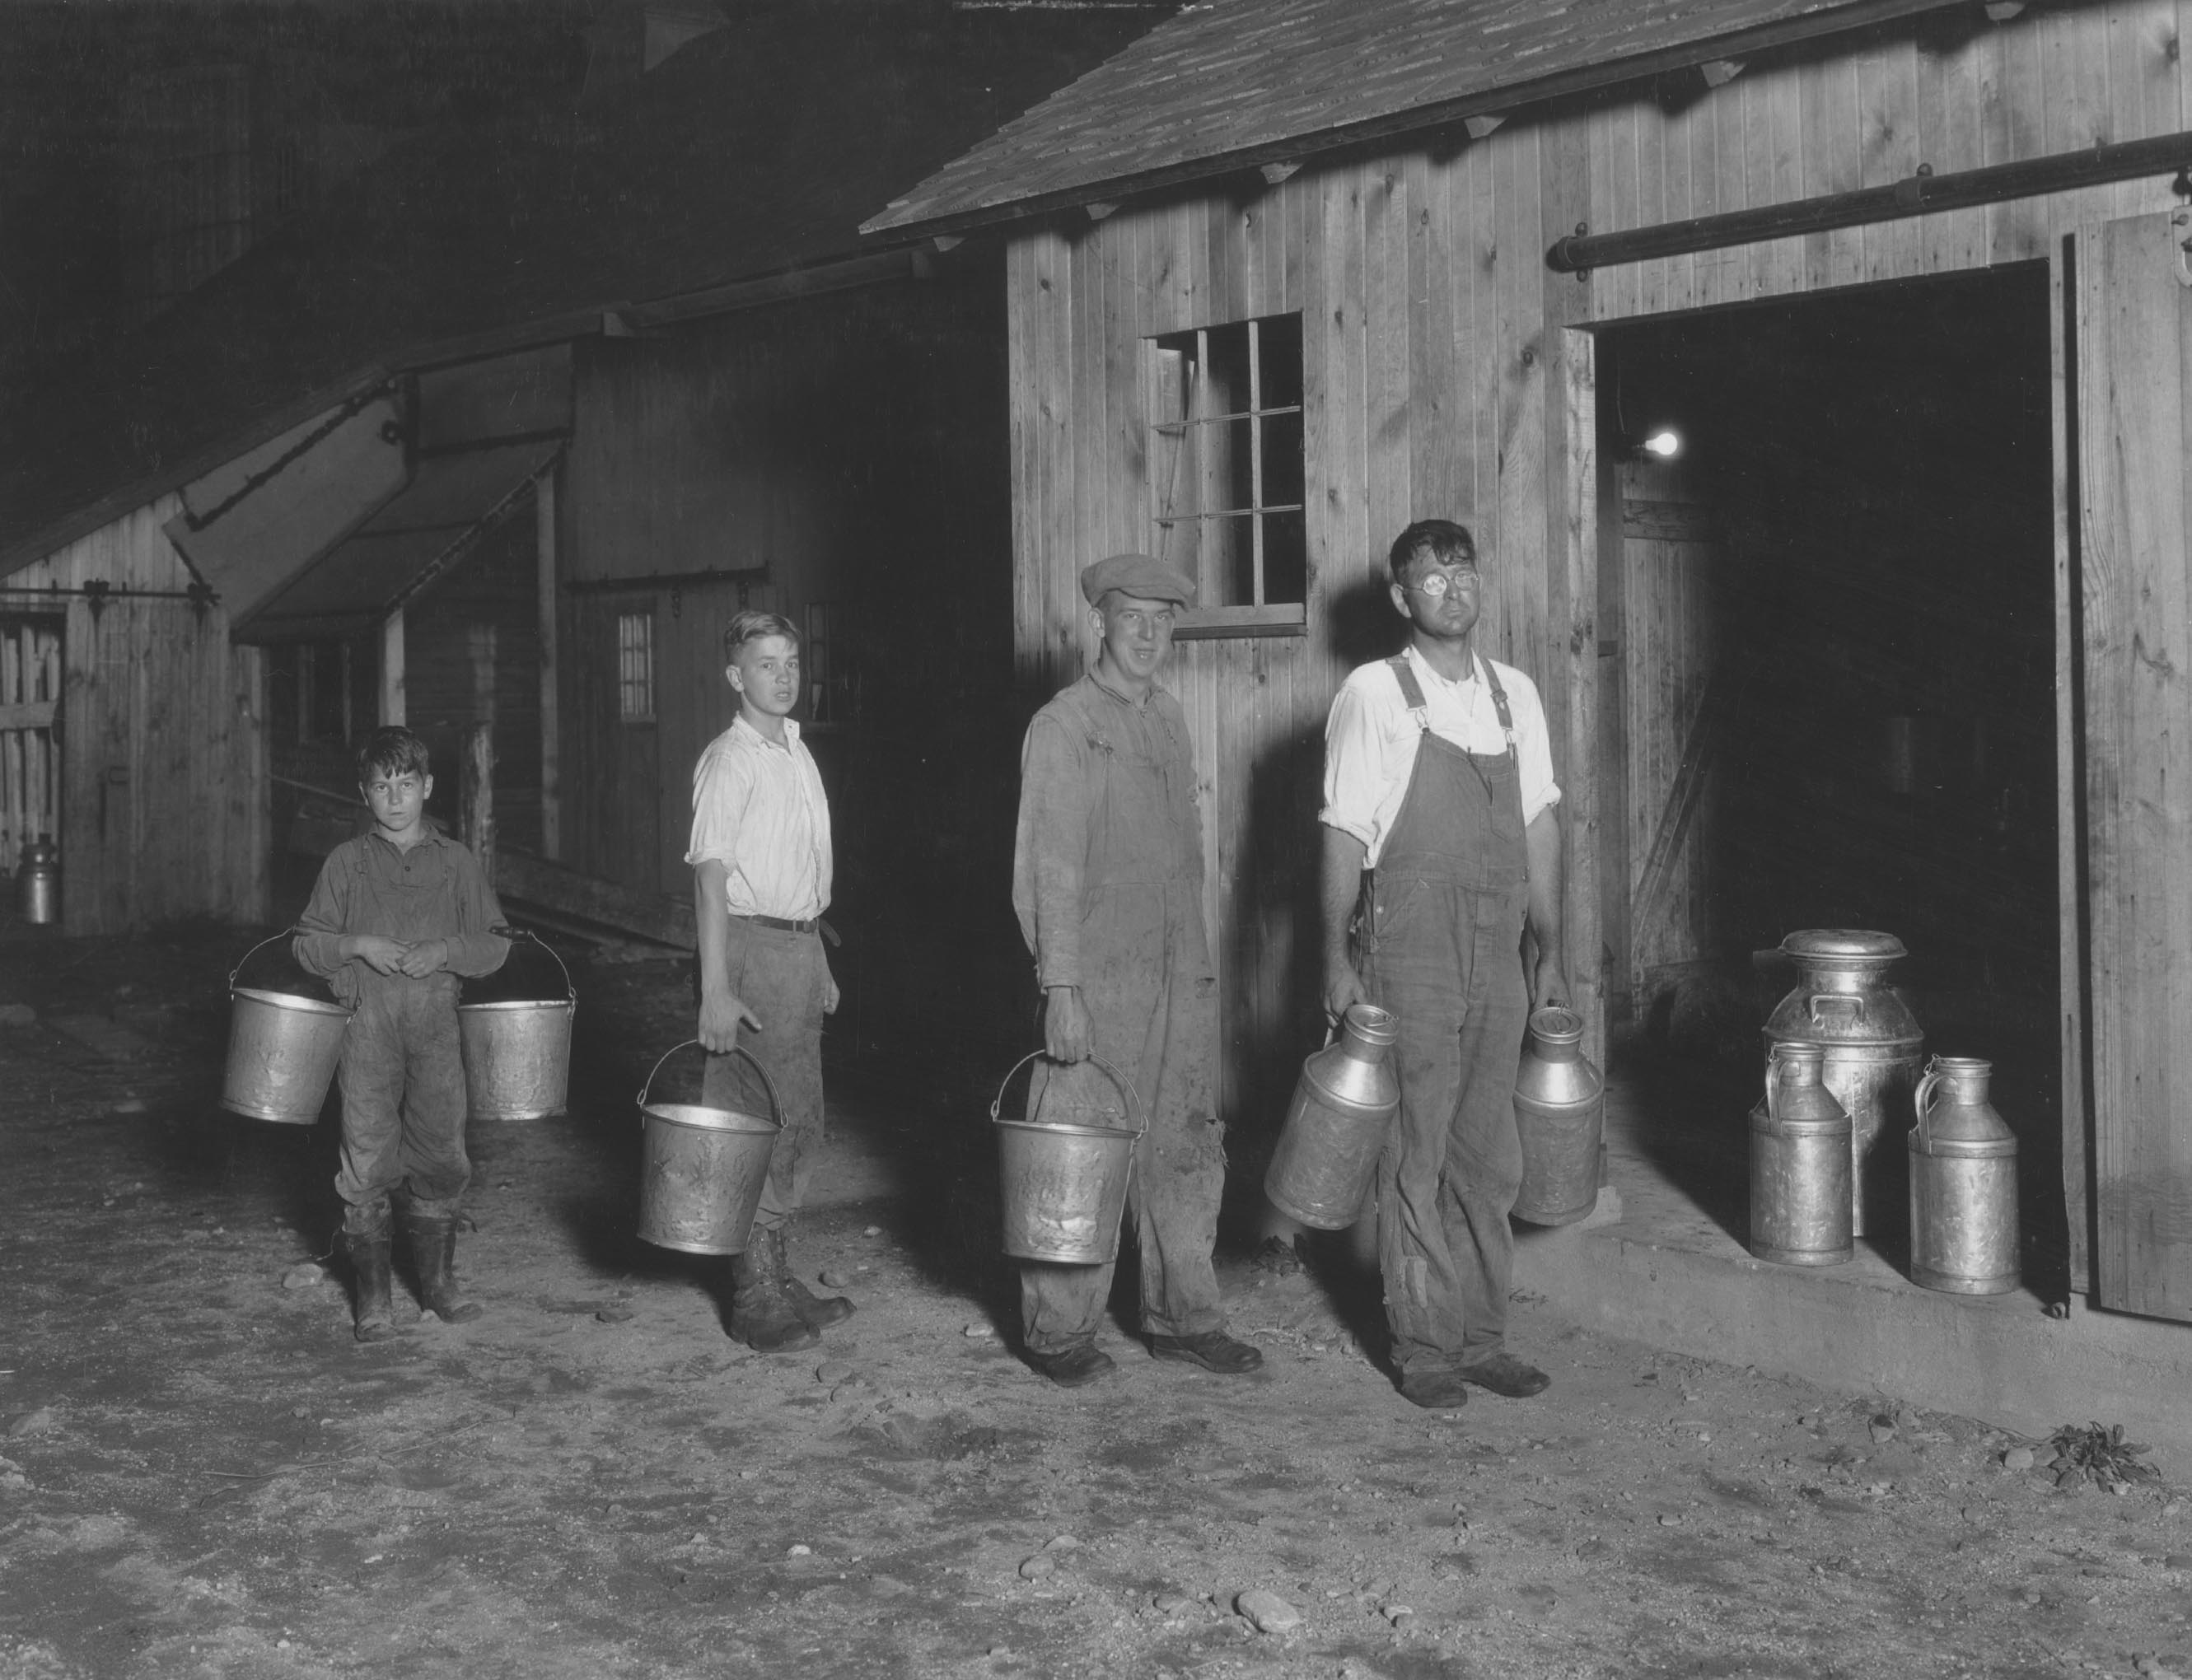 A New London County family readies for milking in 1928